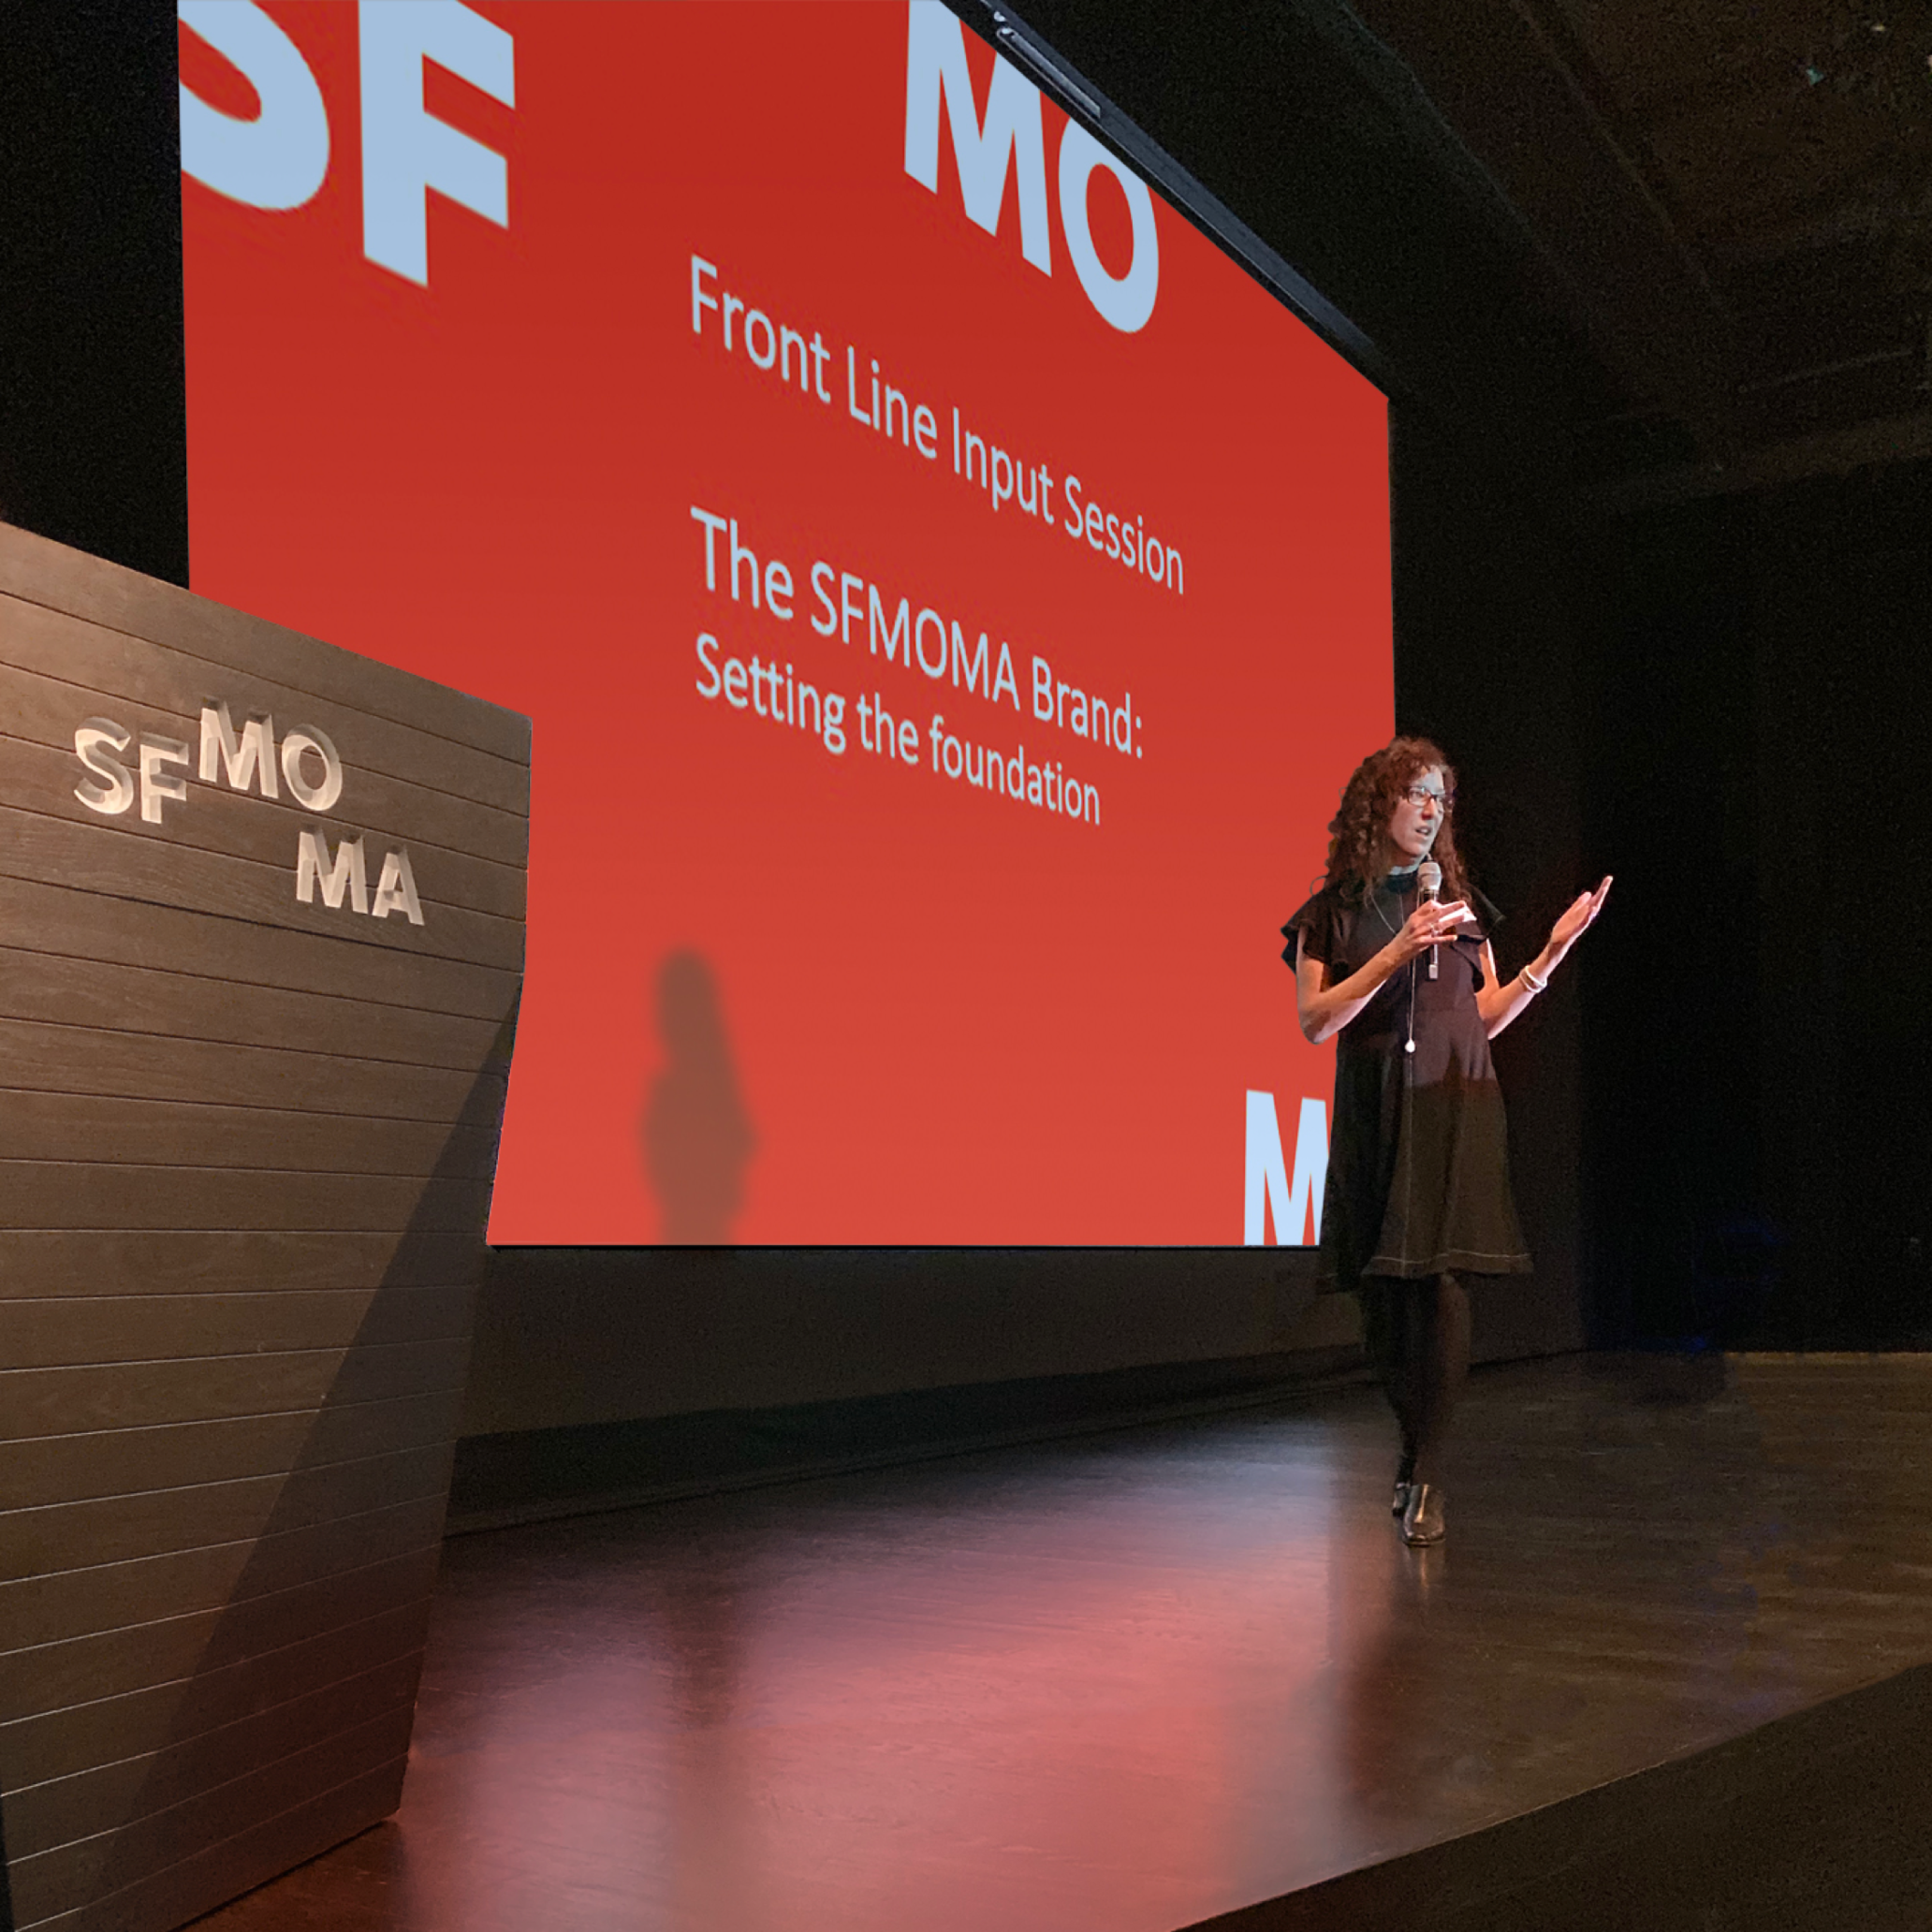 Shannon leading a brand workshop at SFMOMA